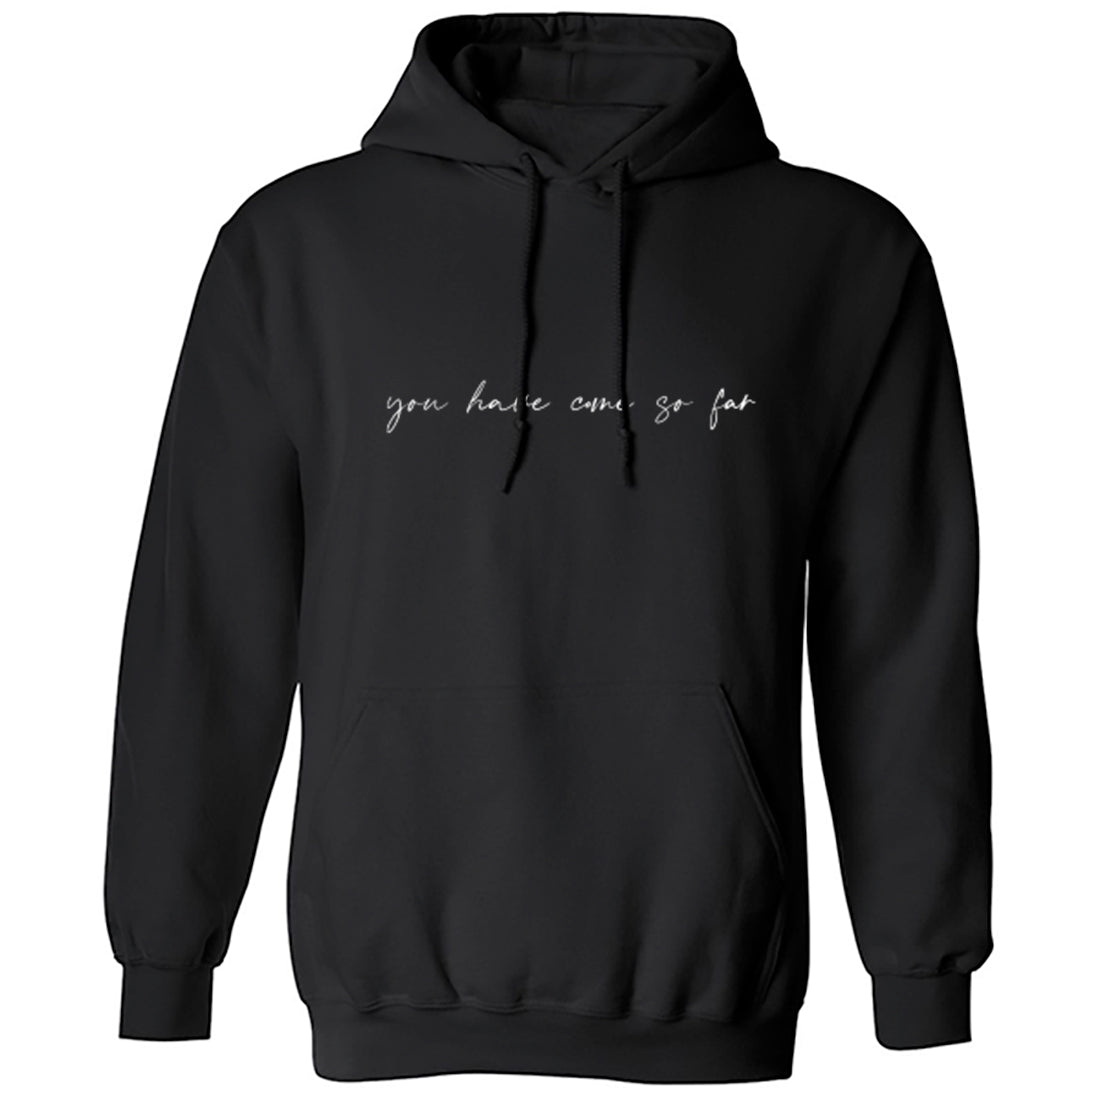 You Have Come So Far Unisex Hoodie K2553 - Illustrated Identity Ltd.